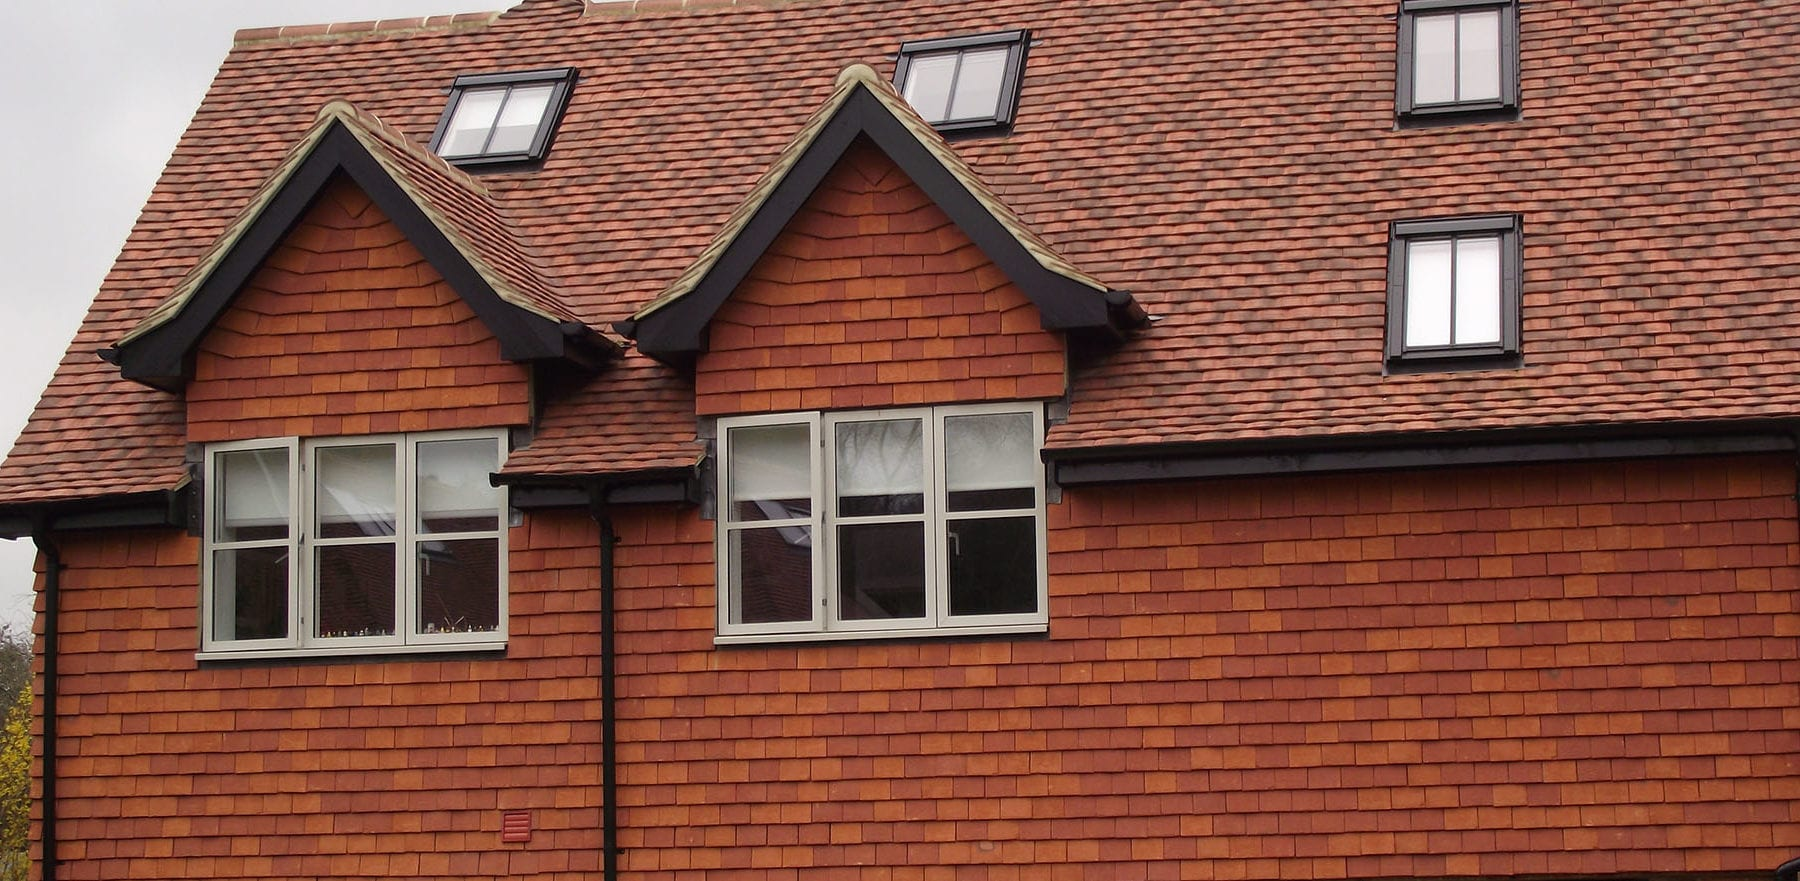 Lifestiles - Handcrafted Orange Clay Roof Tiles - Liss, England 5